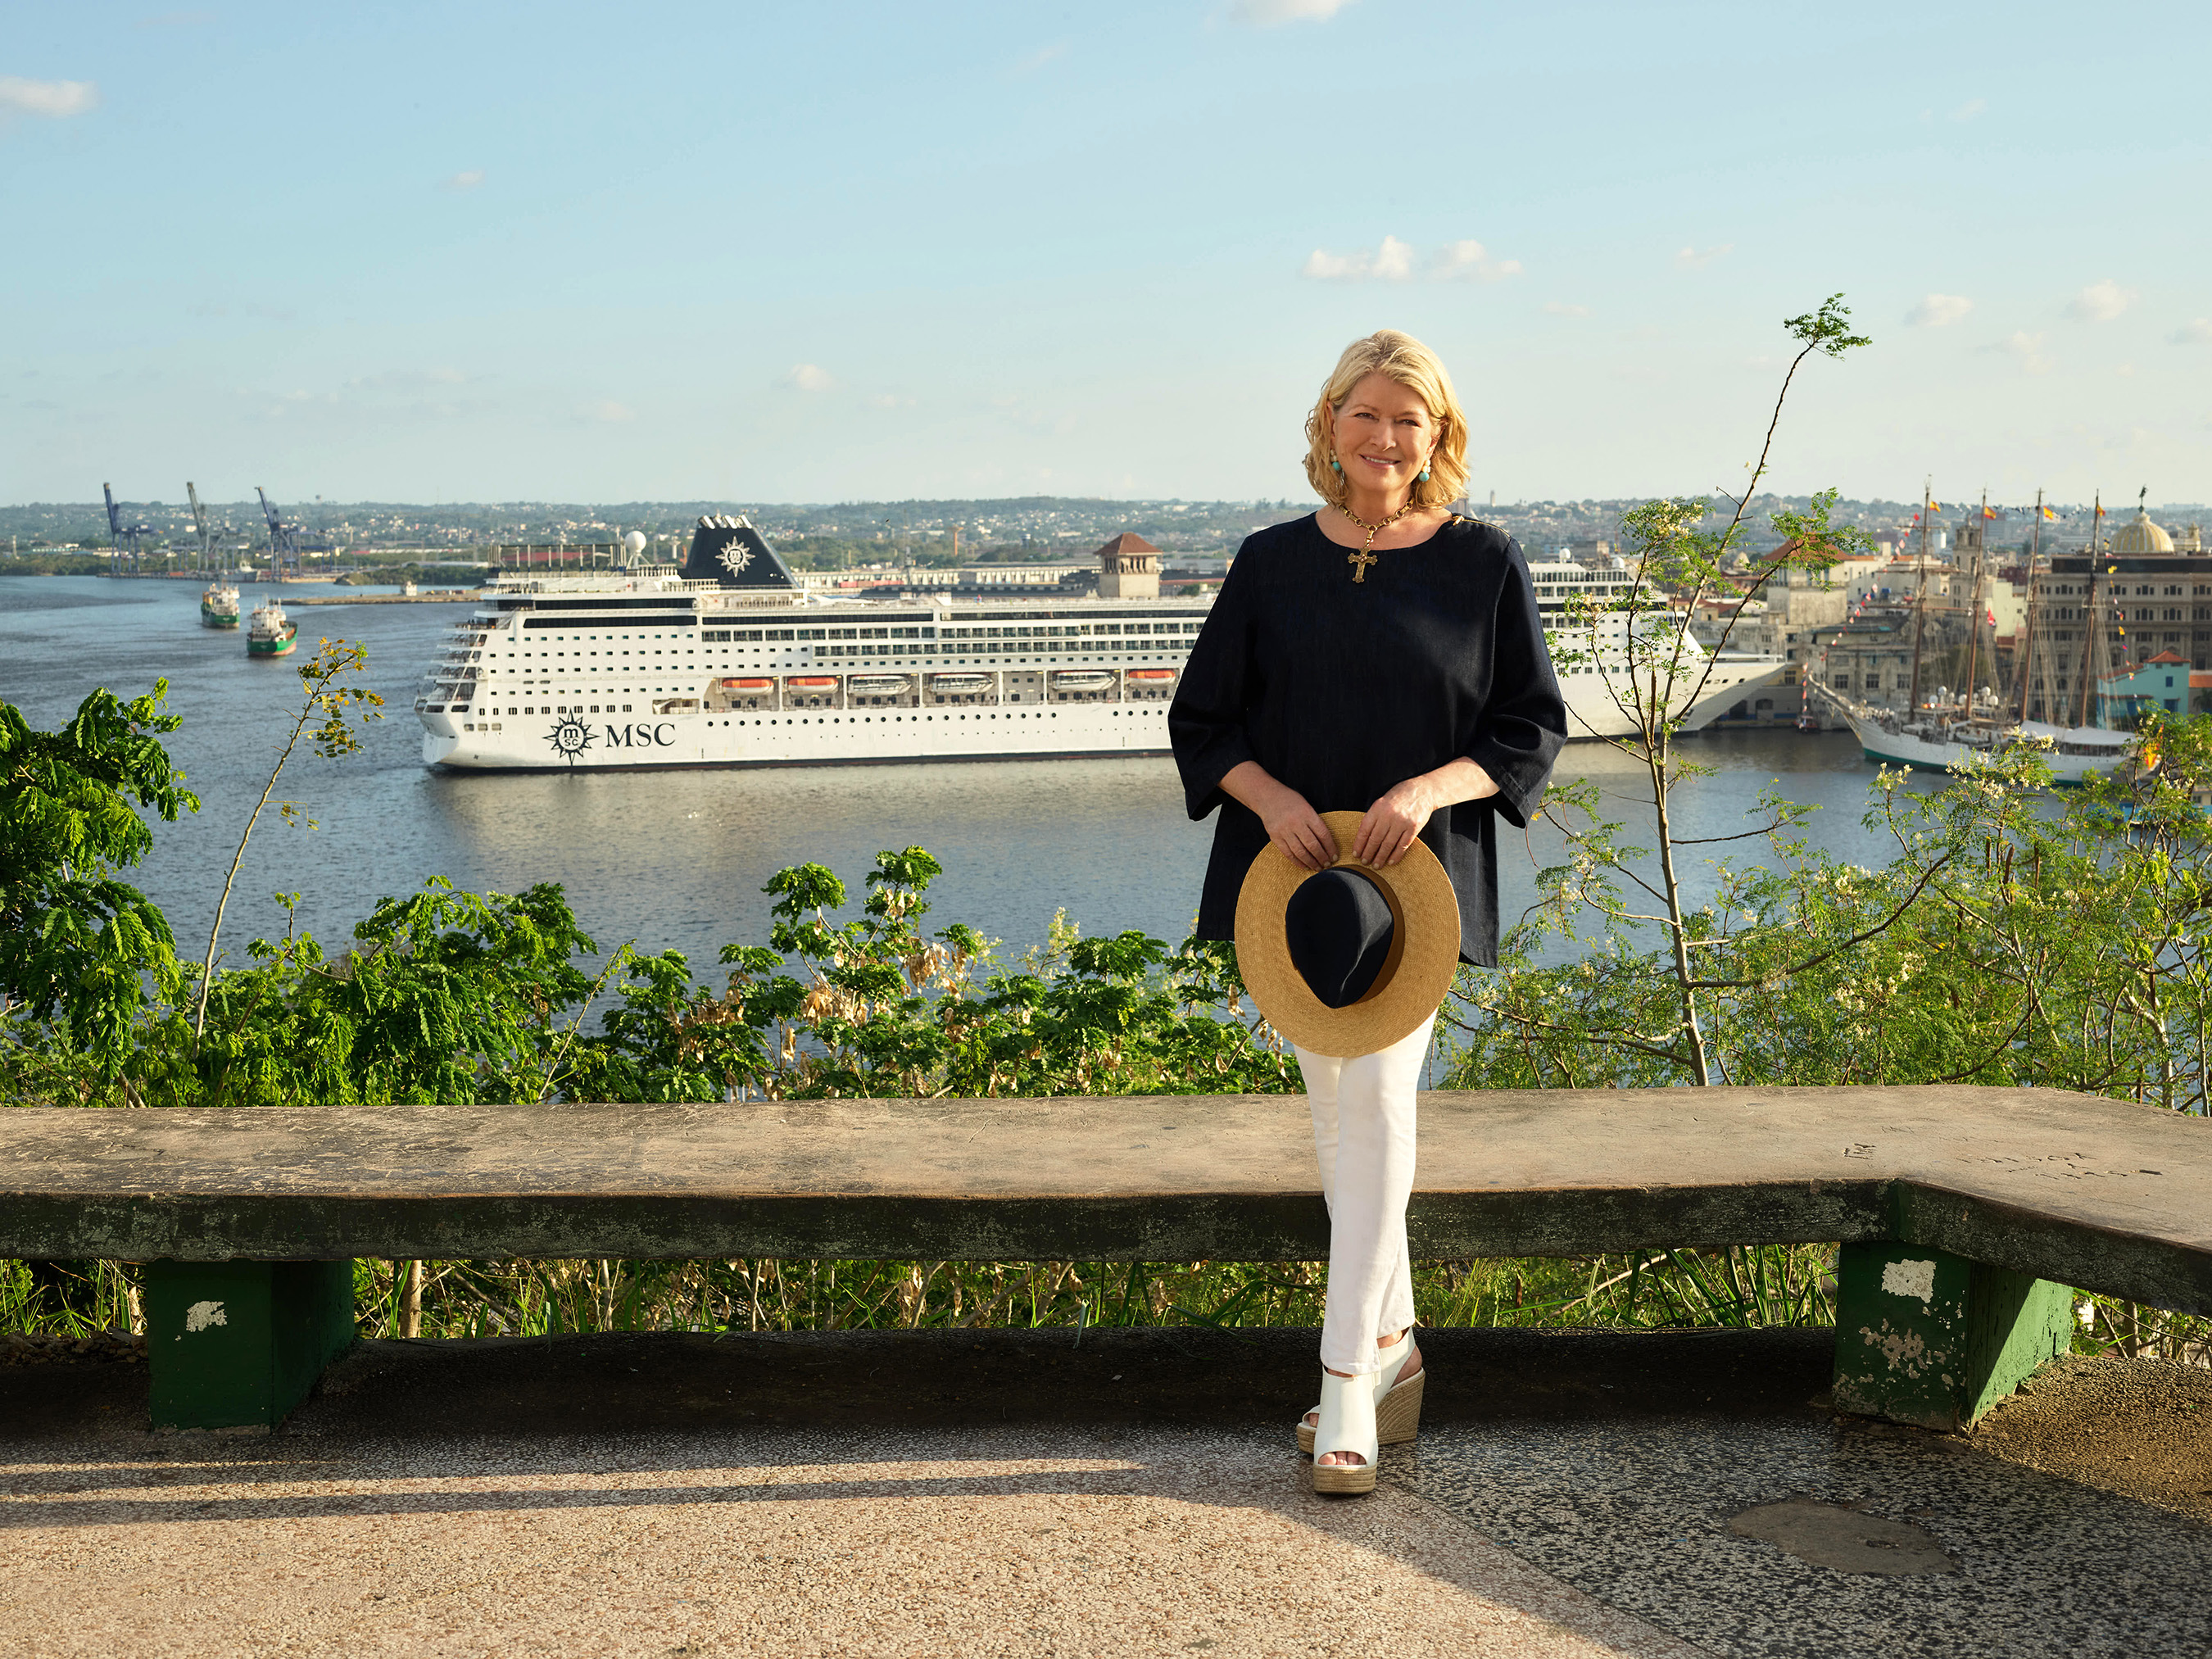 With the new Martha Stewart & MSC Cruises partnership, guests will be able to celebrate, discover and experience their Caribbean vacations with specially curated shore excursions, celebration surprise gift packages, and onboard special holiday dinner menus and recipes. (Credit: Douglas Friedman)